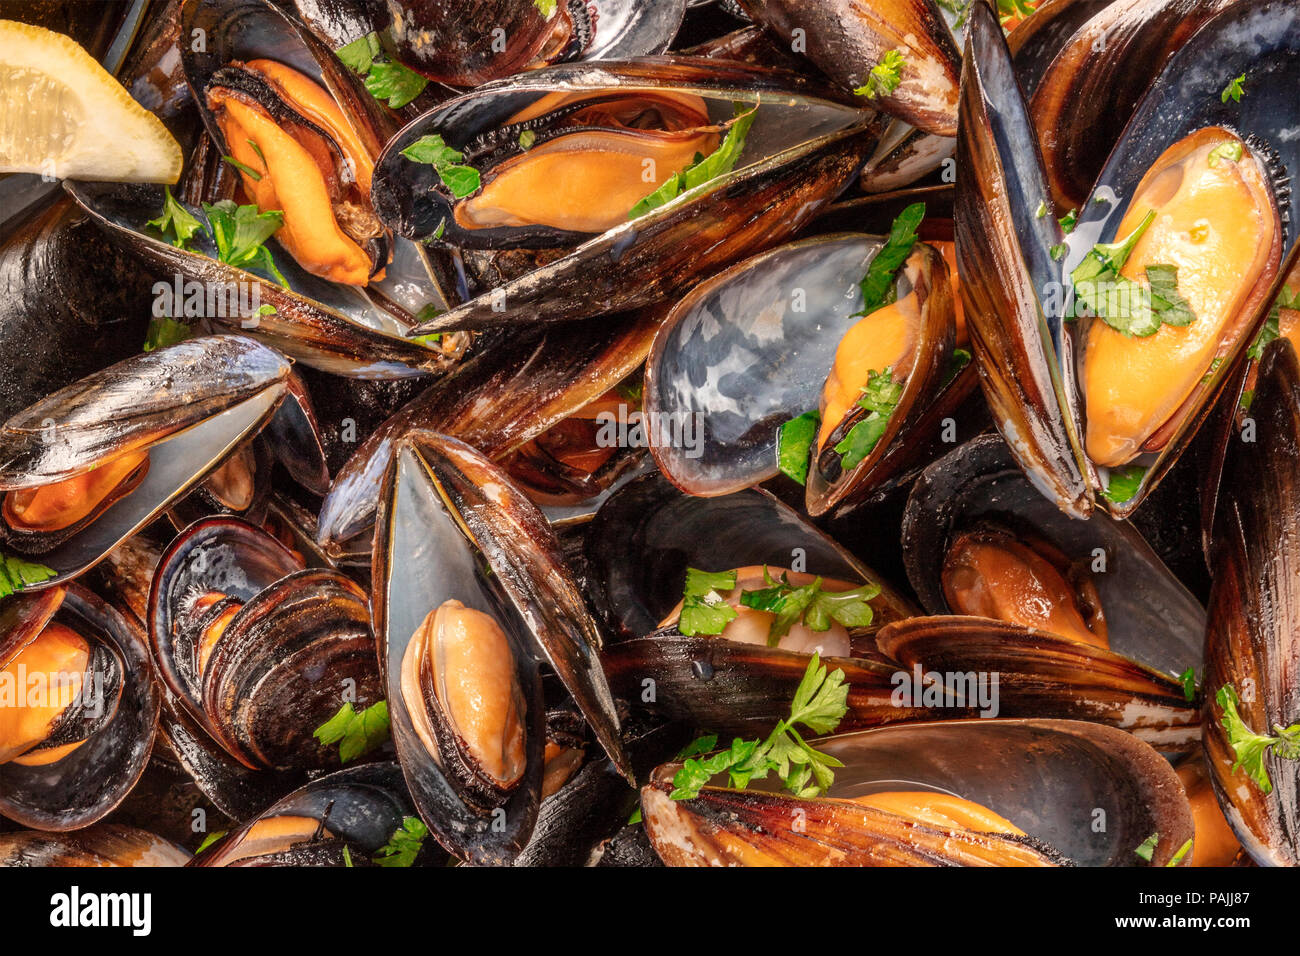 Closeup of cooked mussels, shot from above - Stock Image